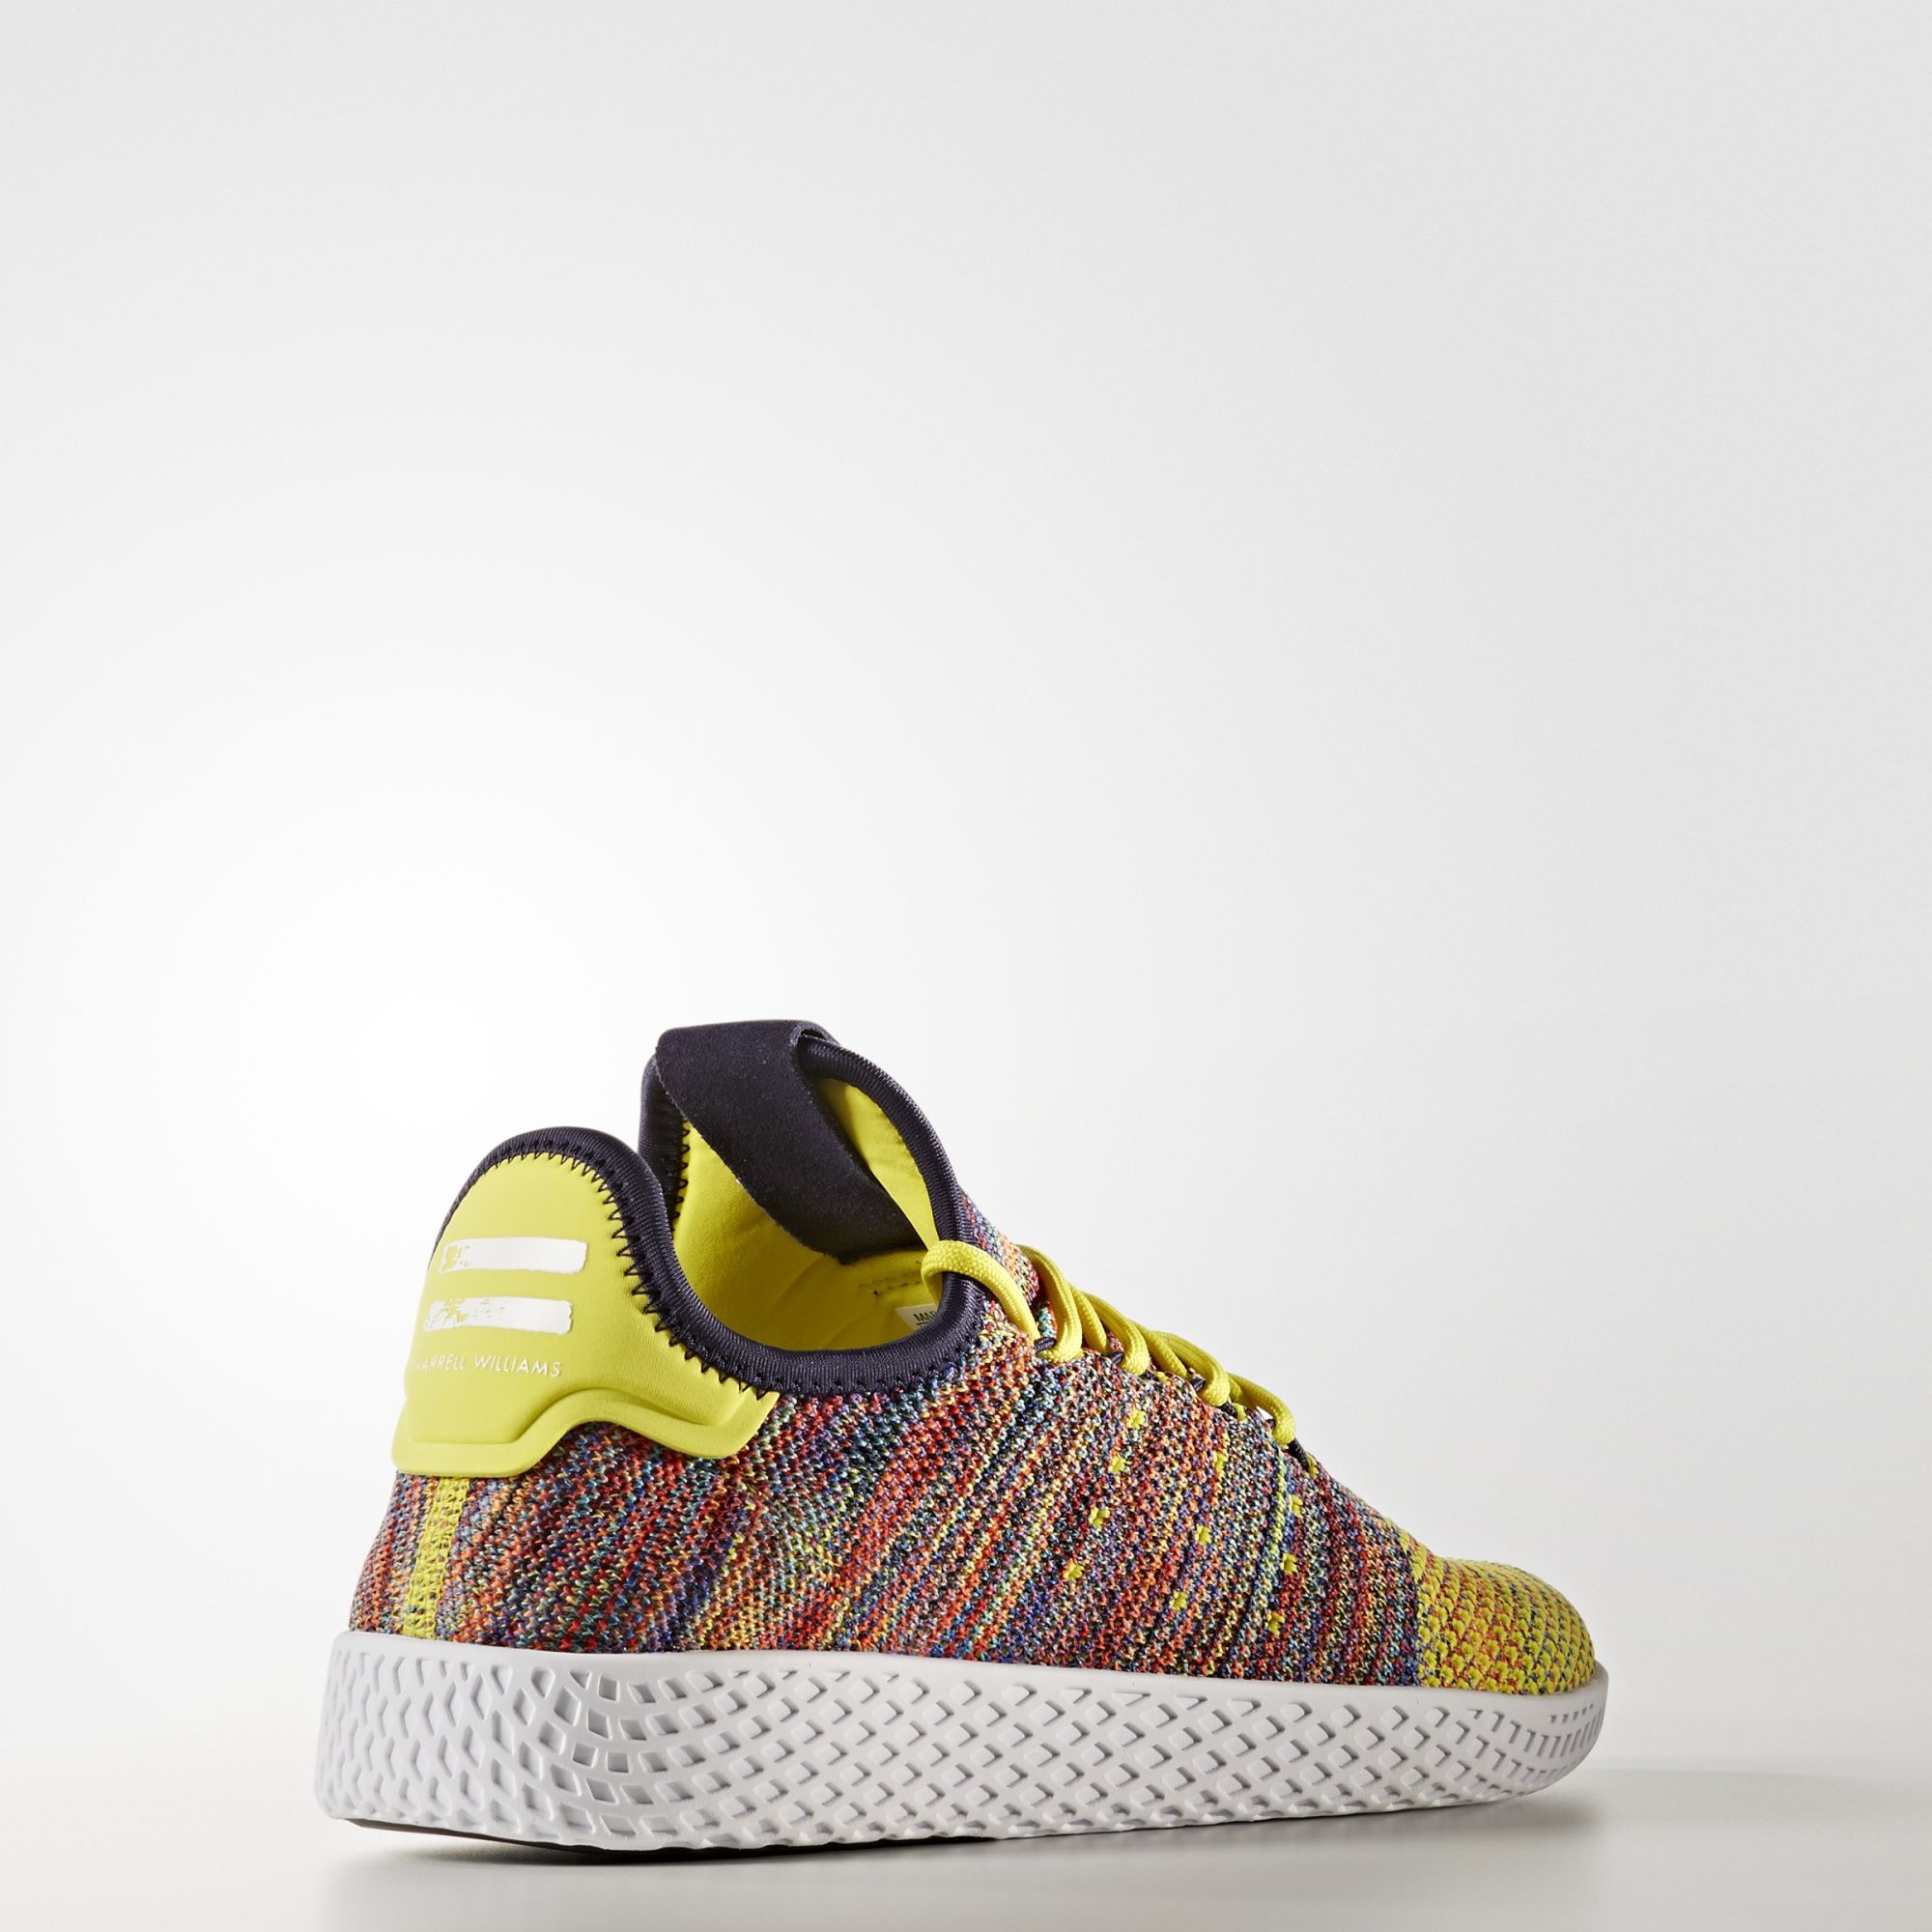 BY2673 Pharrell Williams x adidas Tennis HU Noble Ink 3